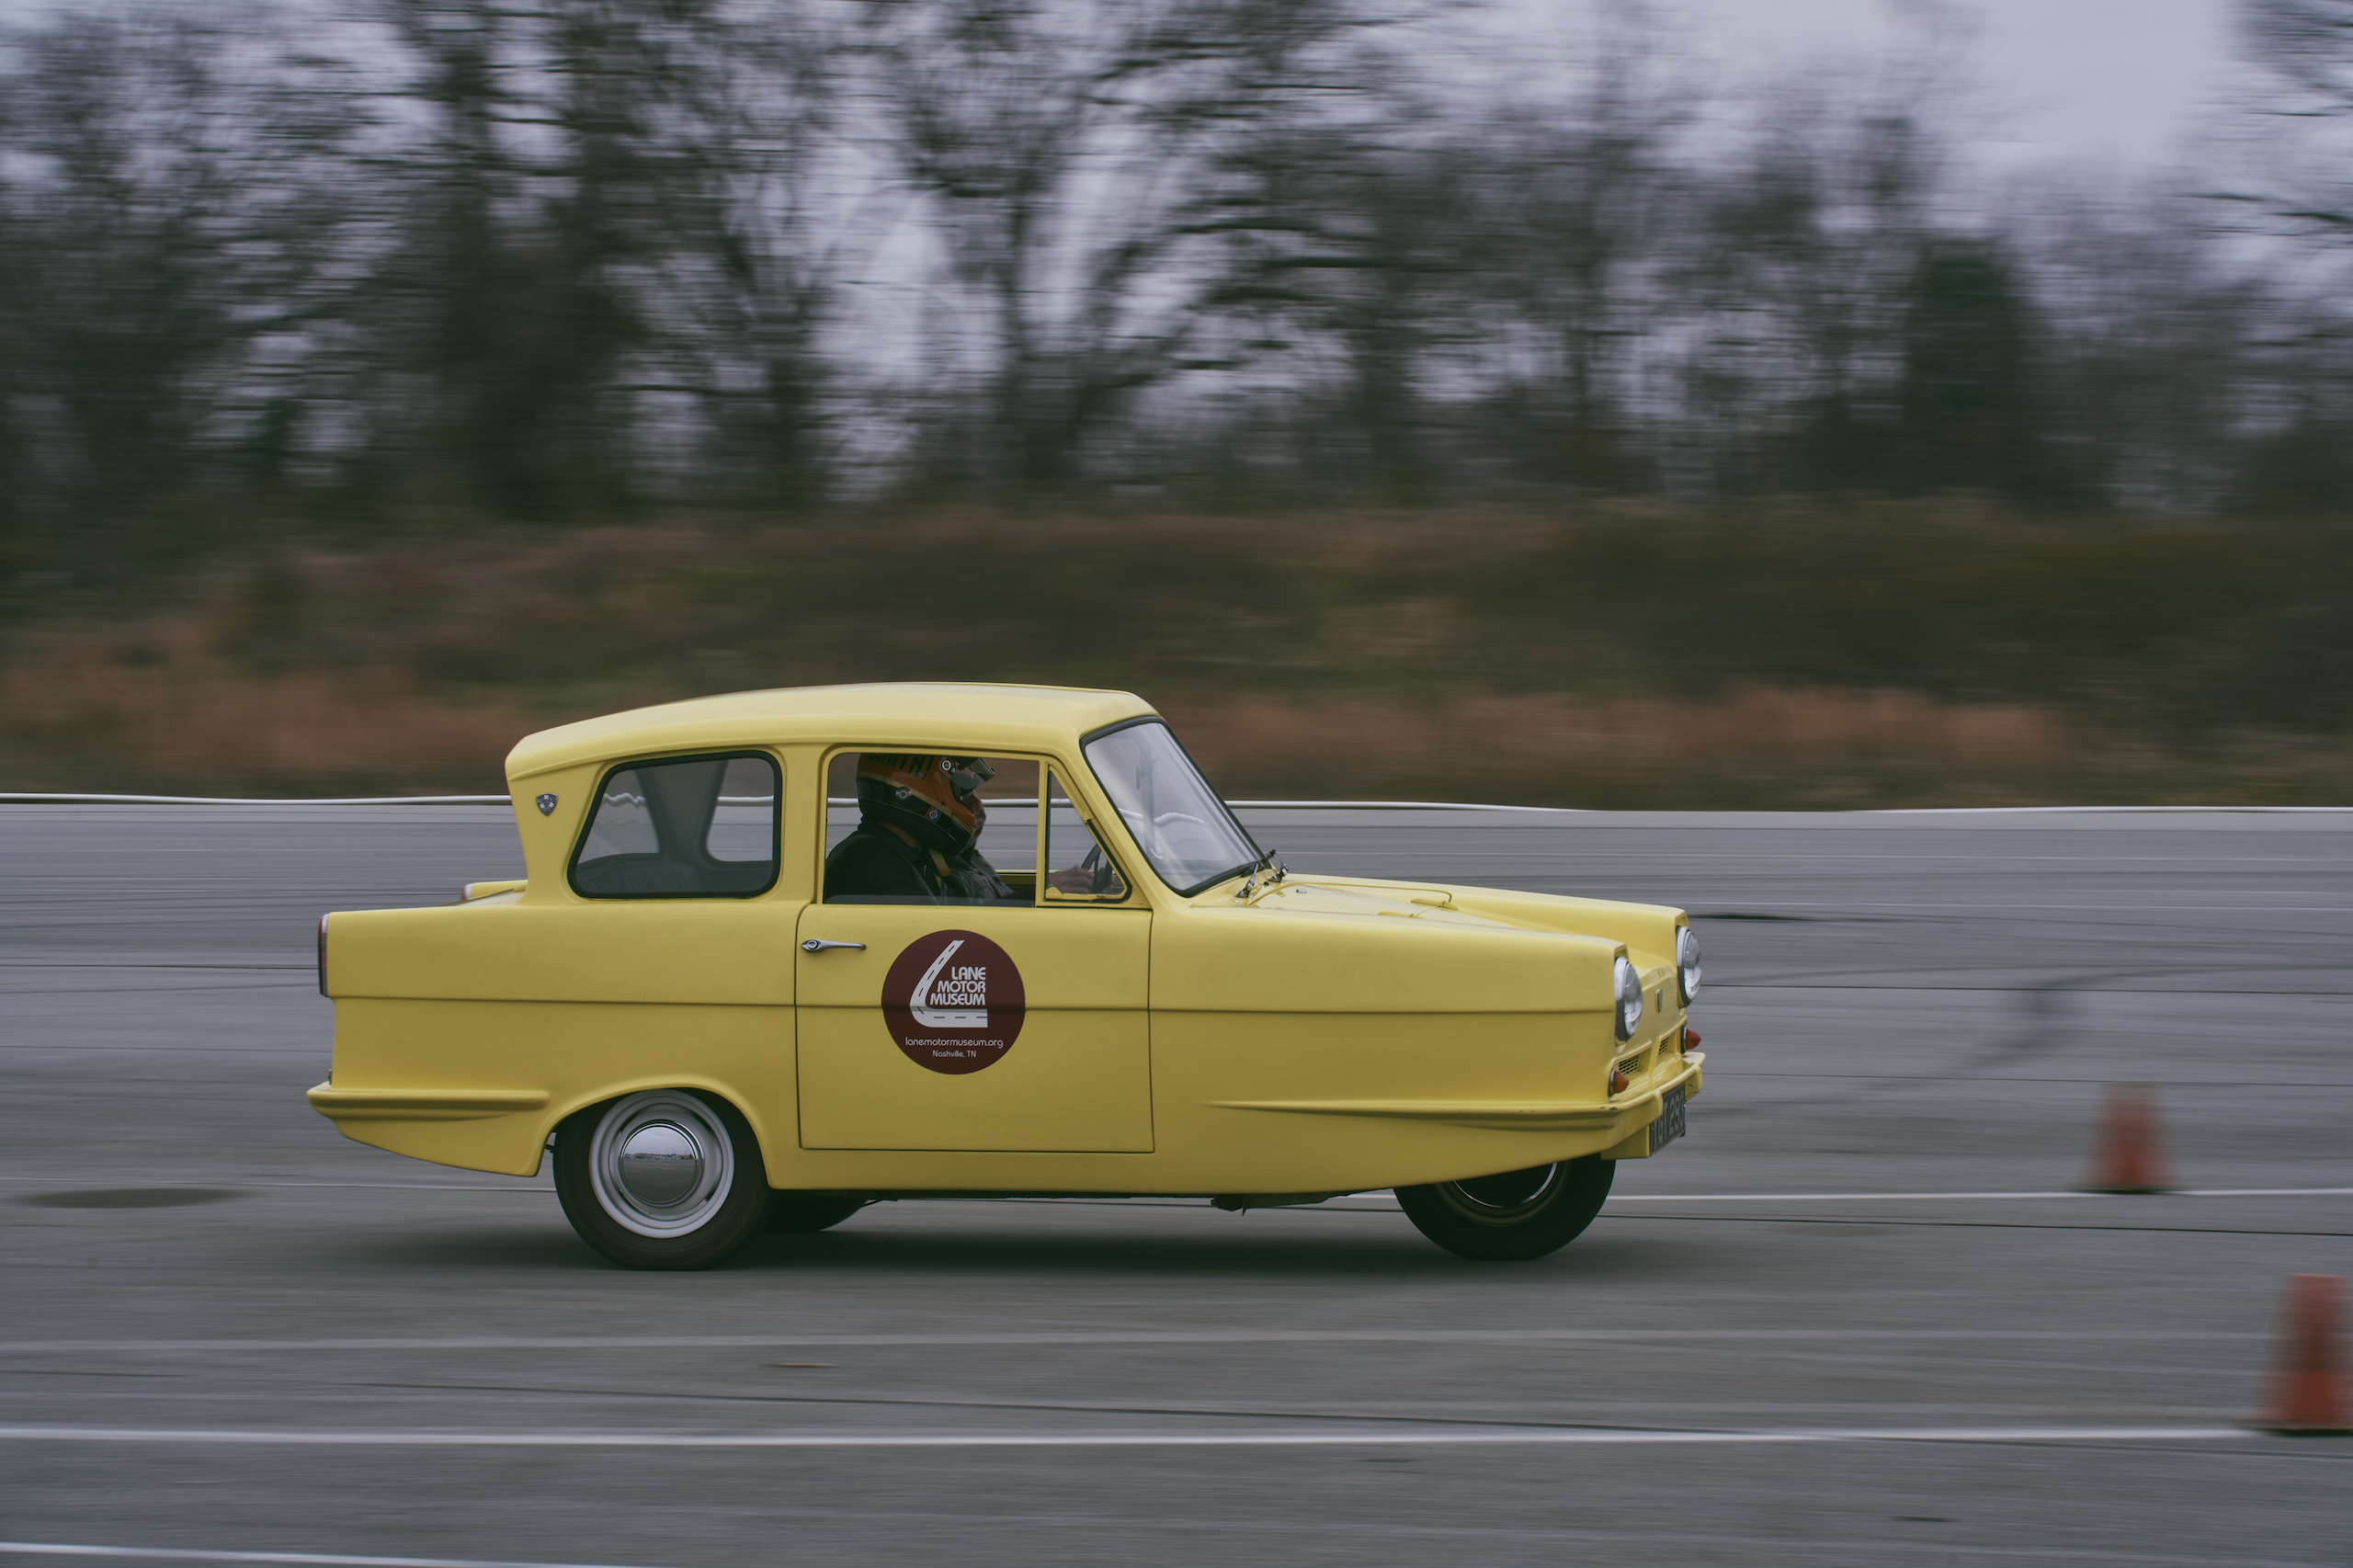 1971 Reliant Regal 330 side profile driving action